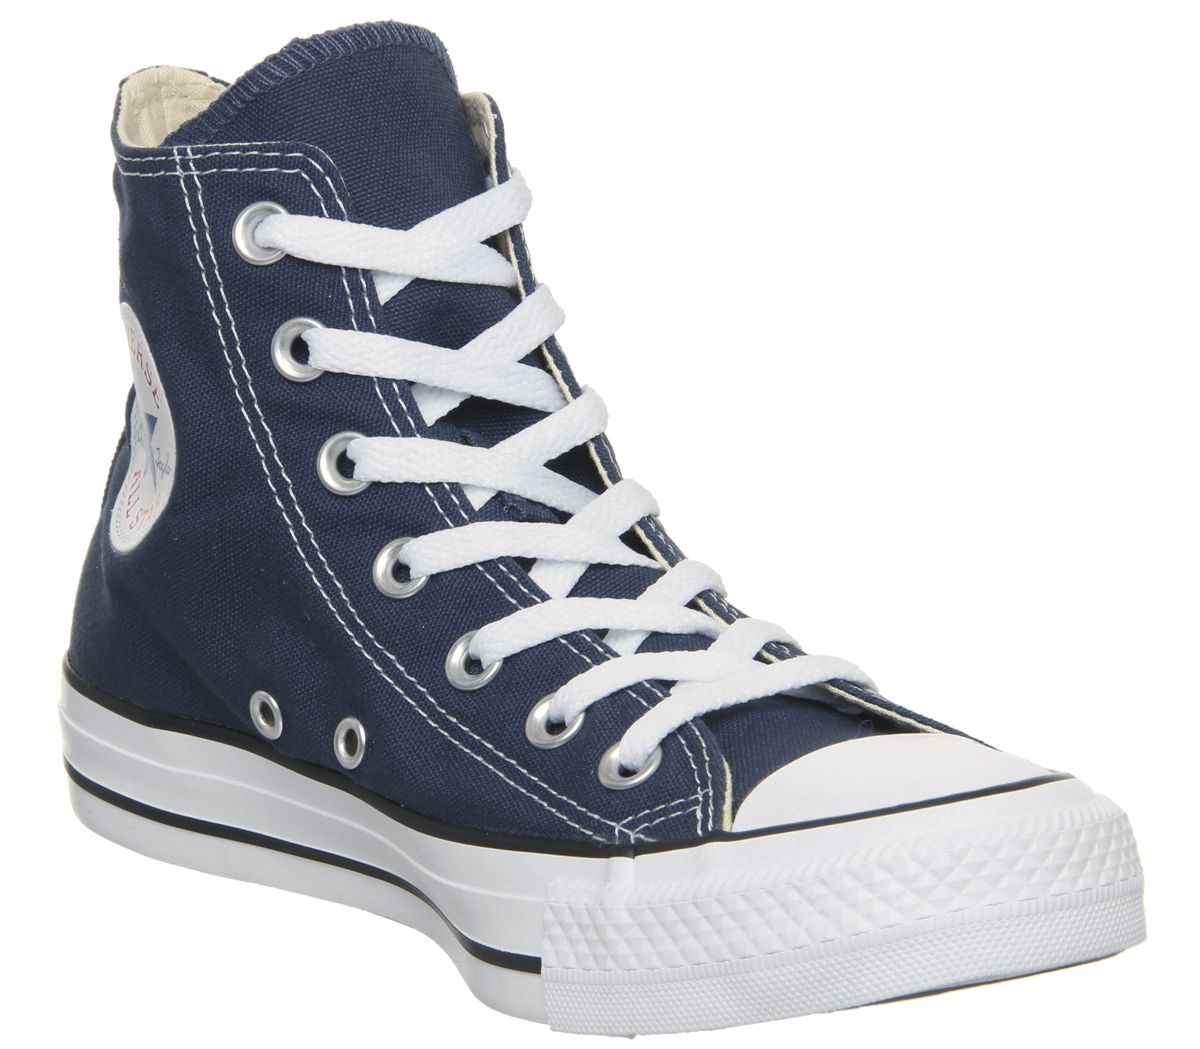 d1e87d517512 Converse All Star Hi Navy Canvas - Unisex Sports